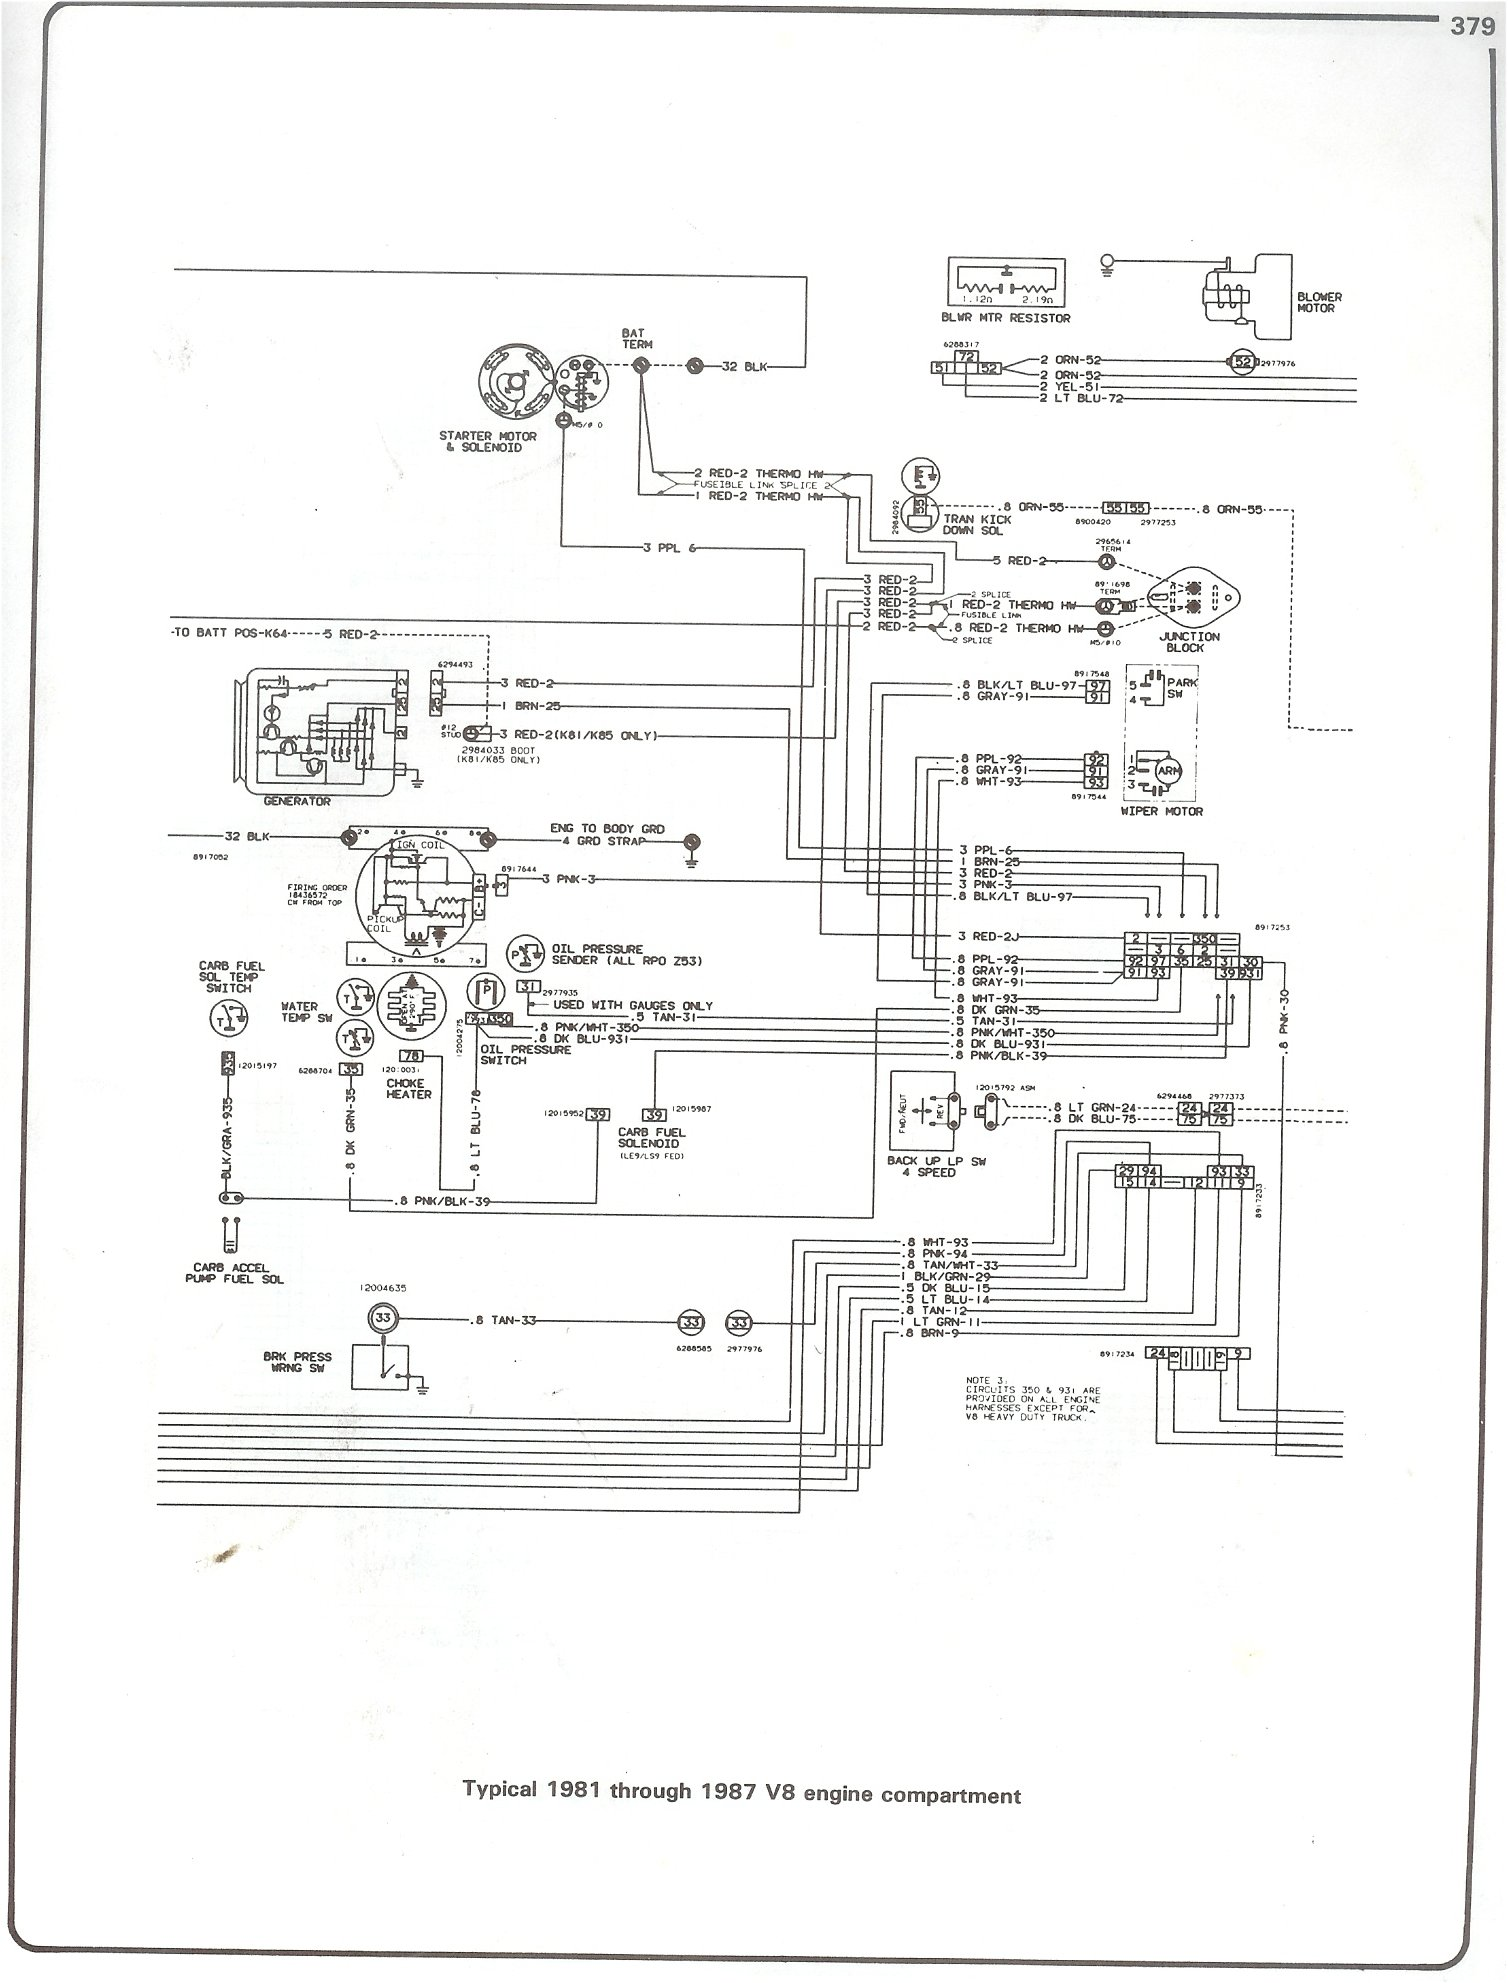 81 87_V8_engine complete 73 87 wiring diagrams Chevy 305 Engine Exploded View at bayanpartner.co